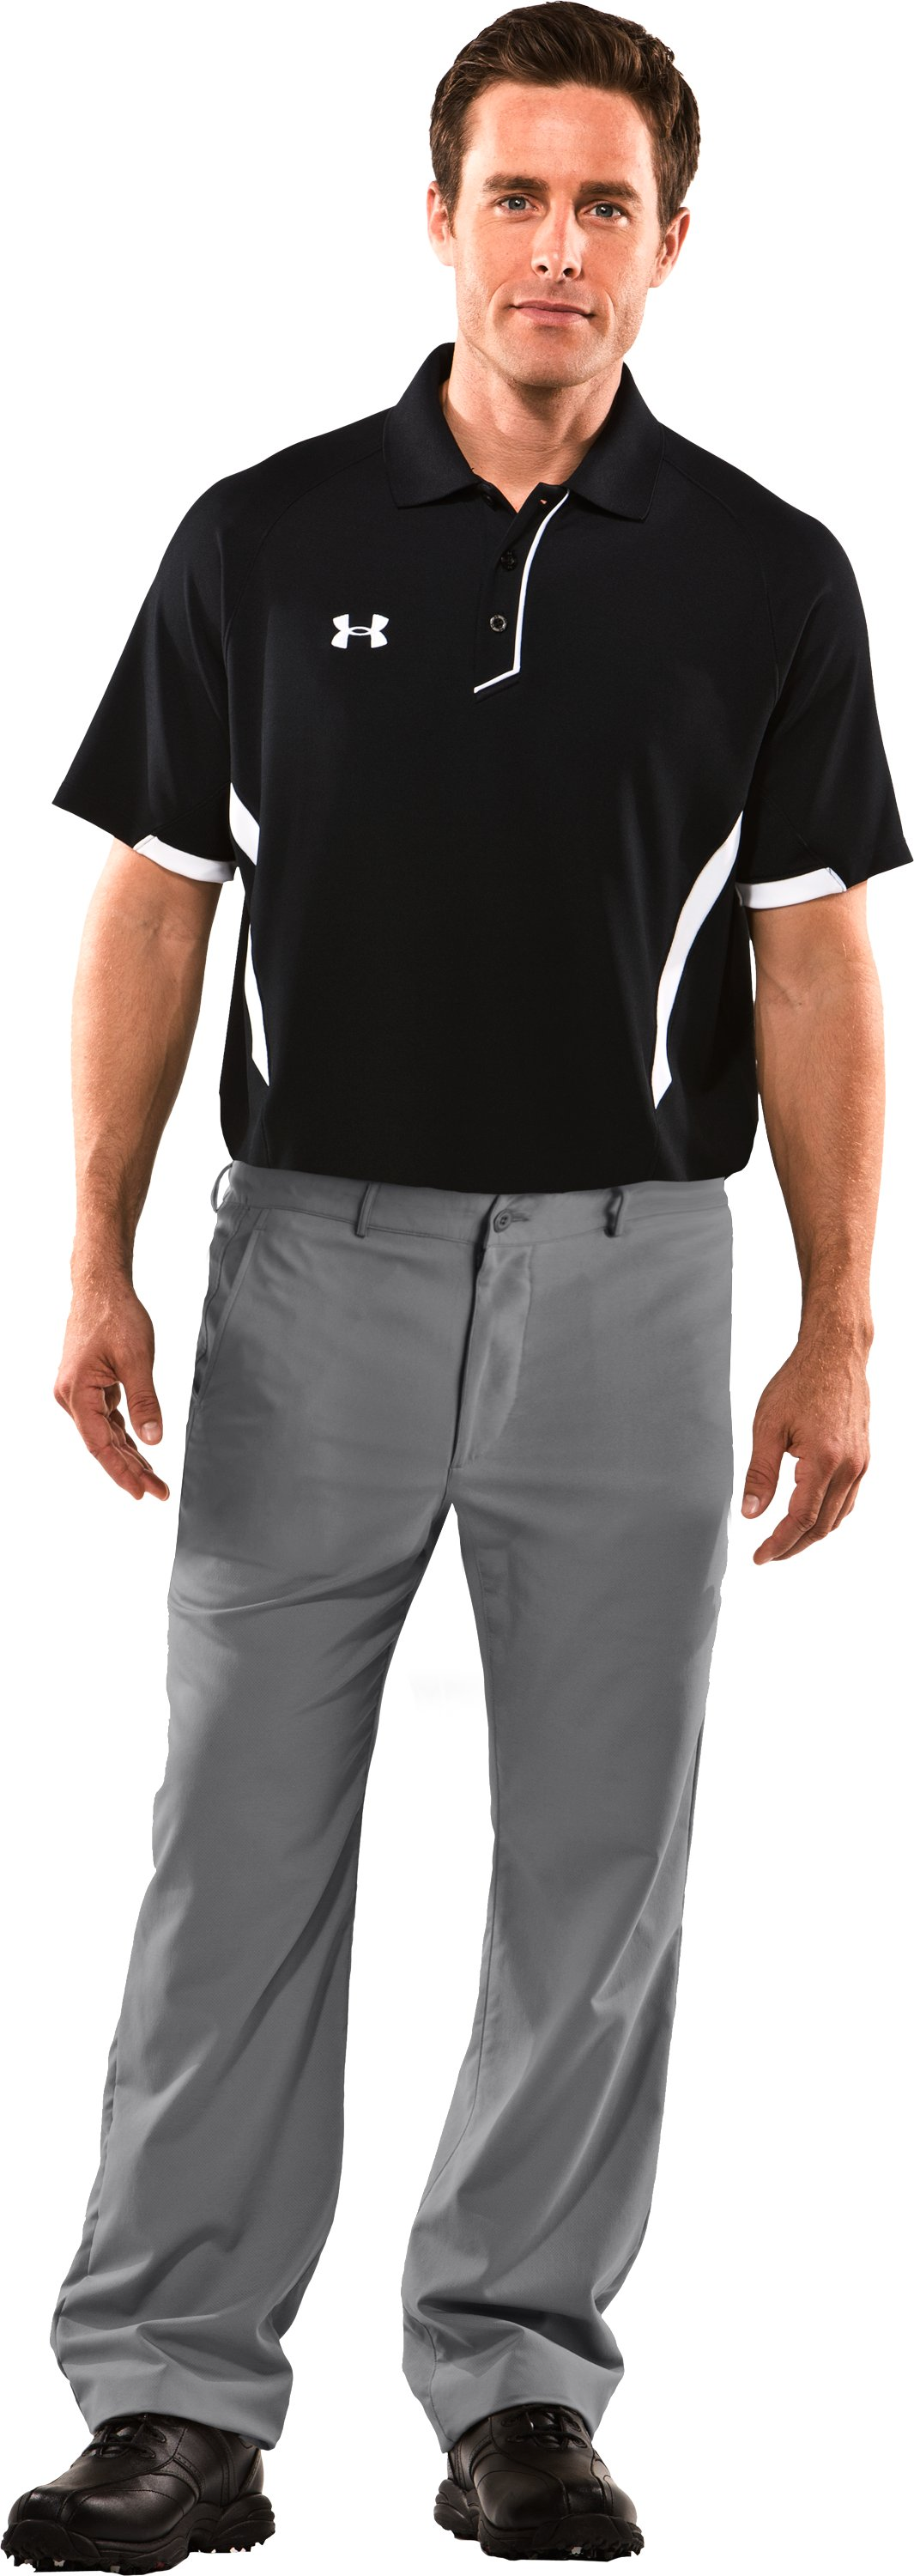 Men's Performance Flat Front Pants, Graphite, Front